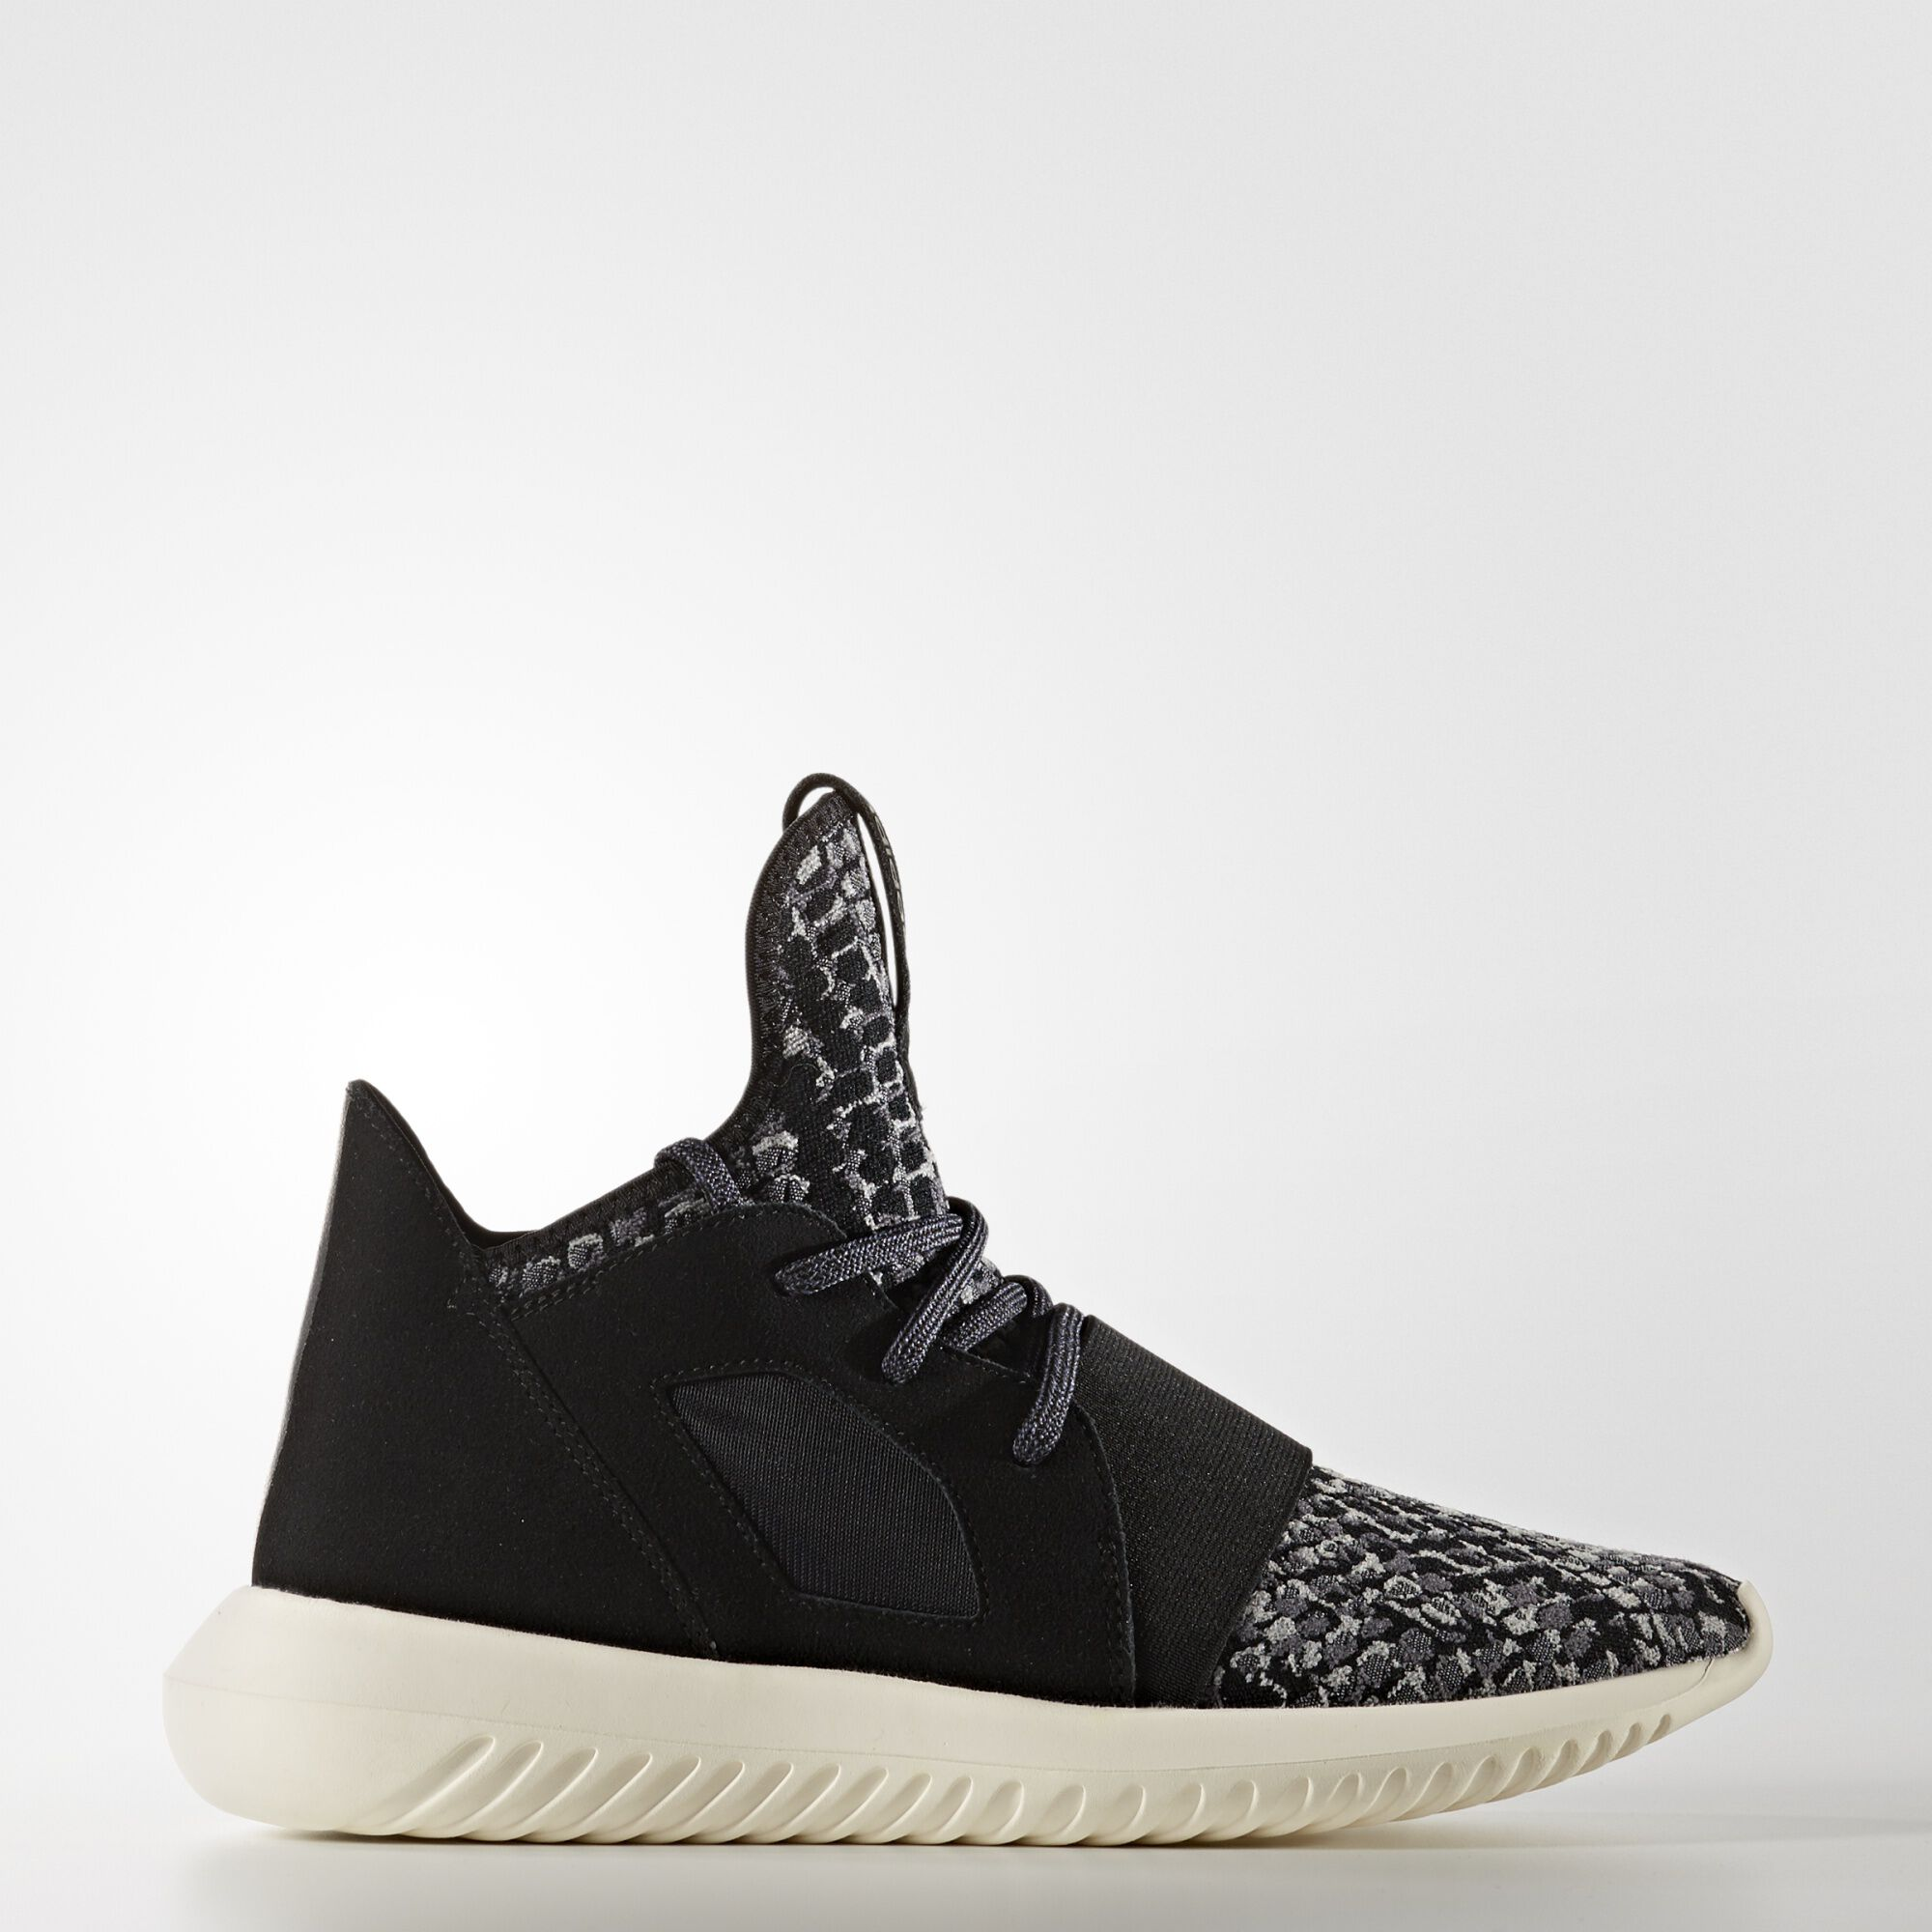 Cheap adidas tubular invader strap enfant